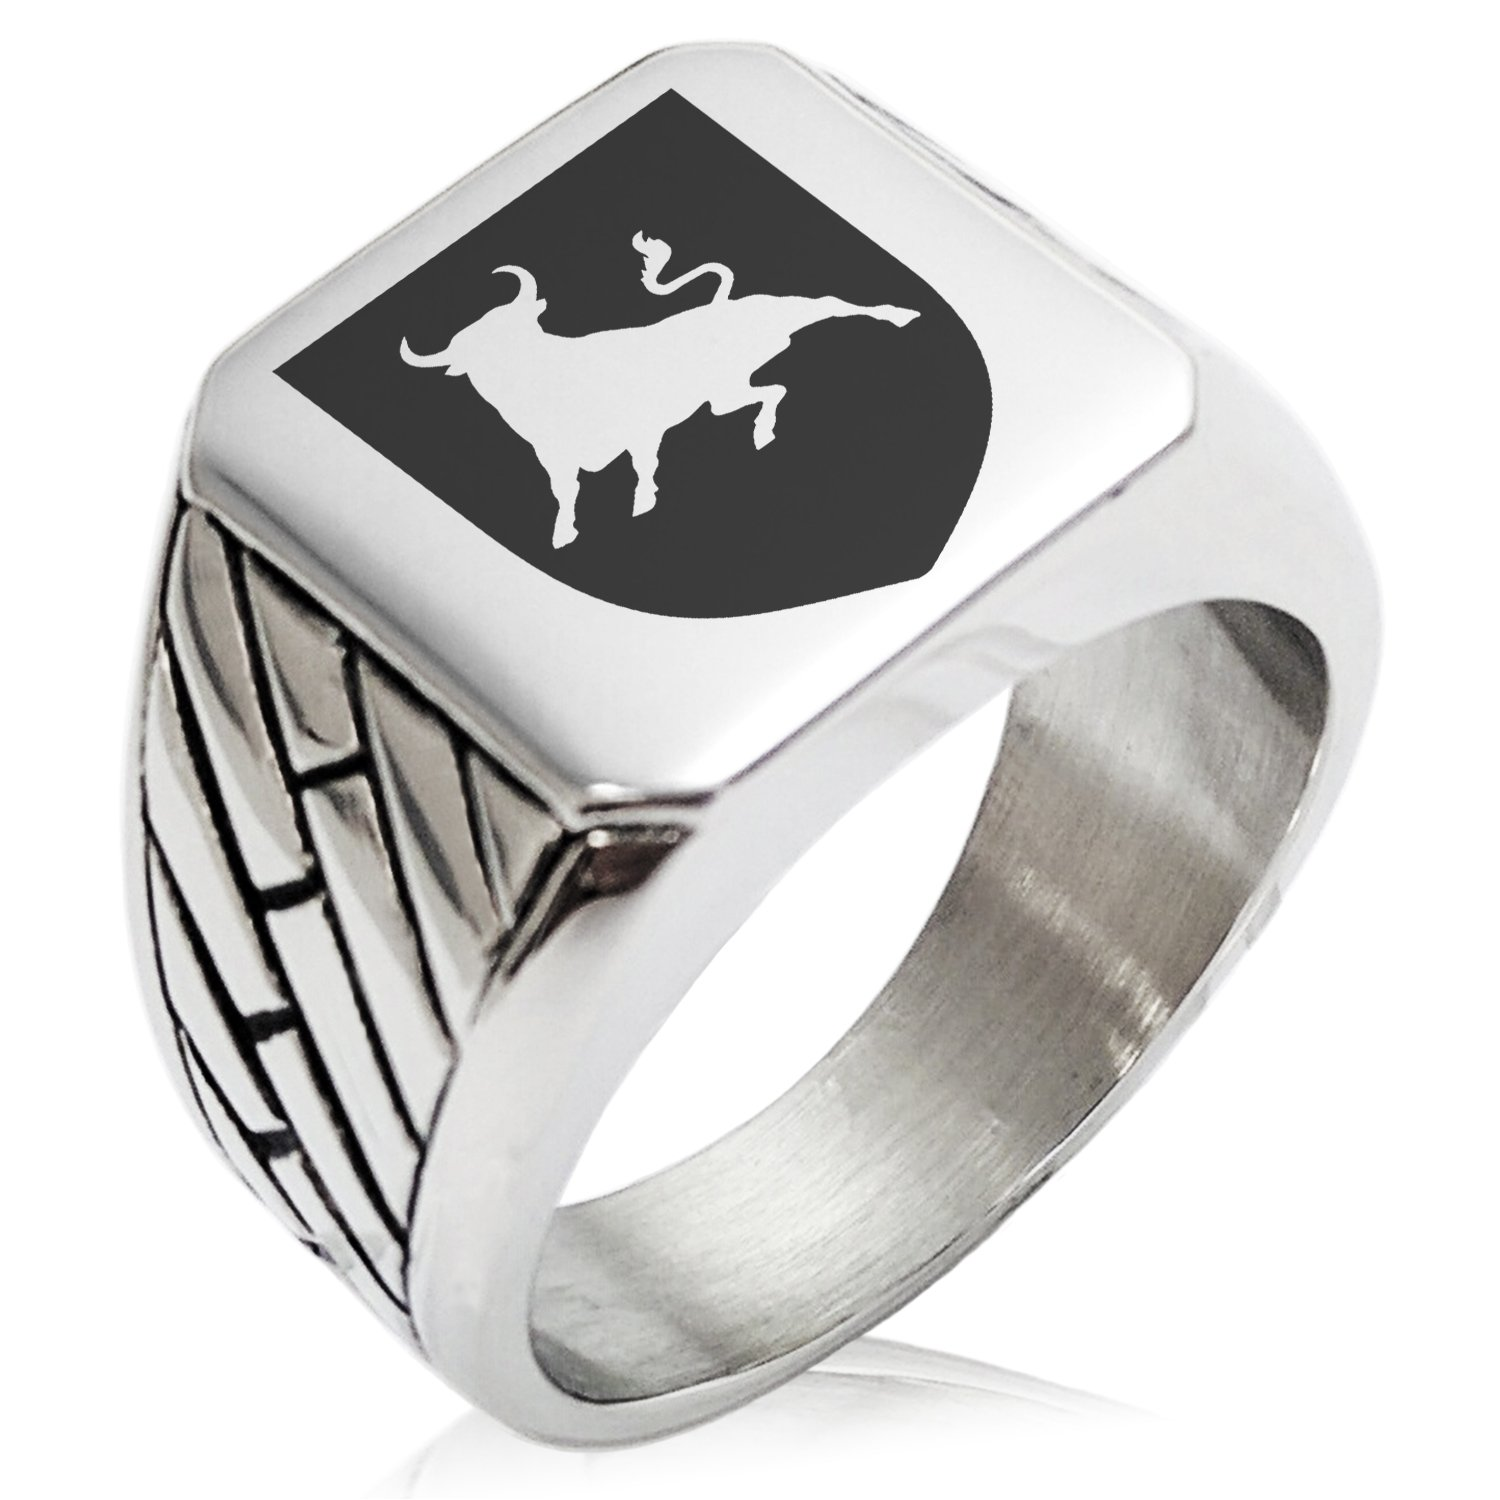 Two-Tone Stainless Steel Bull Bravery Coat of Arms Shield Engraved Geometric Pattern Biker Style Polished Ring, Size 12